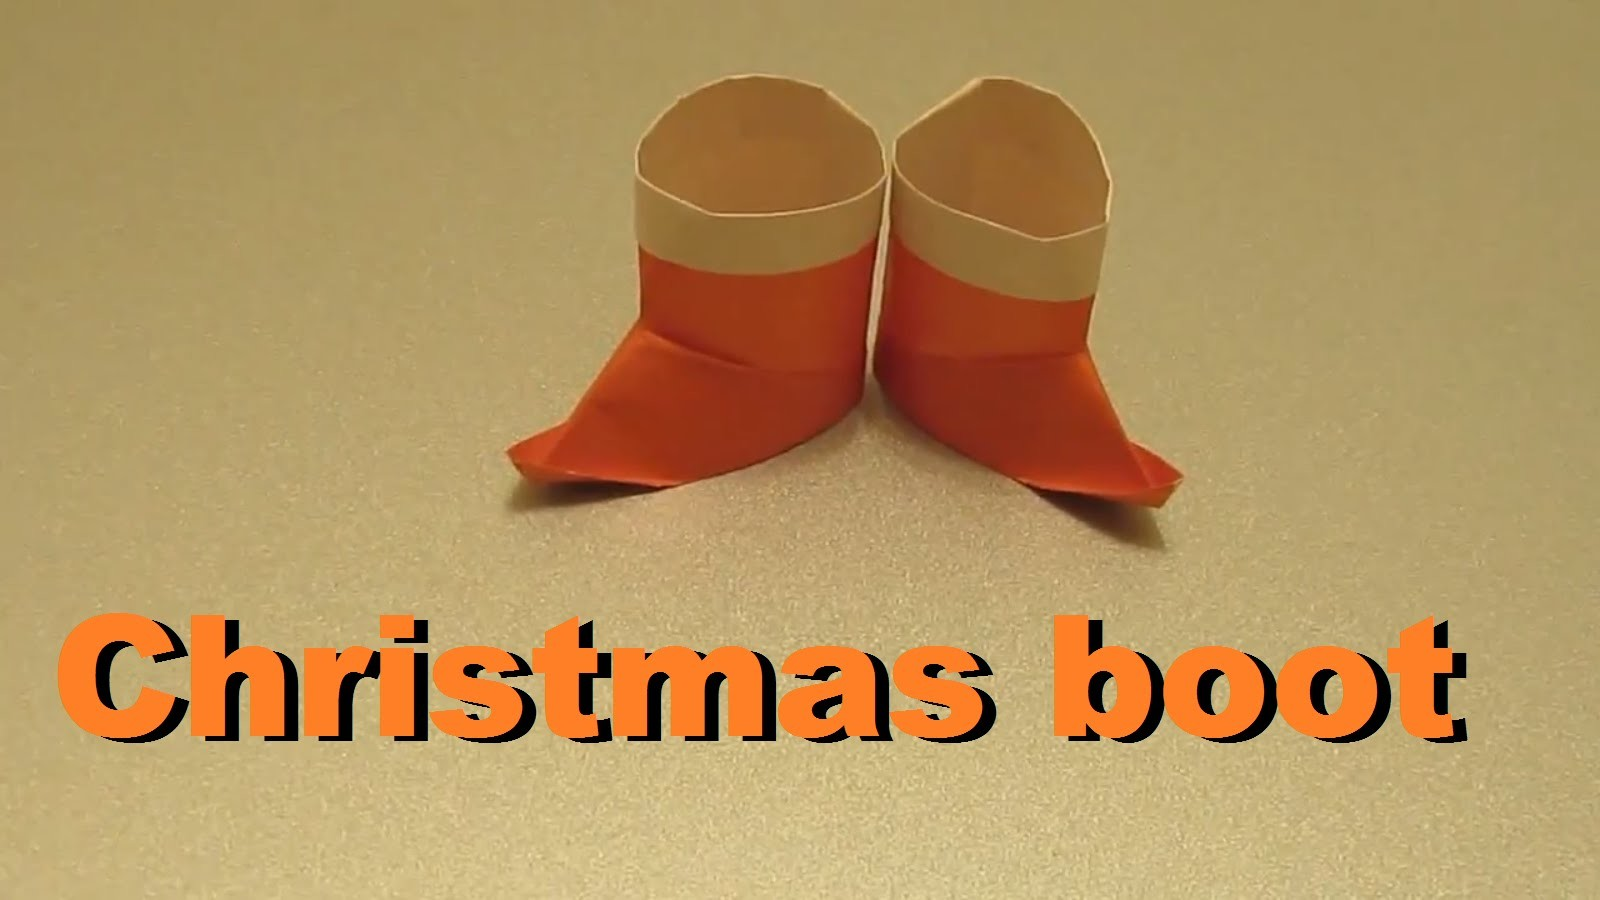 Origami boot. How to make a paper Christmas boot